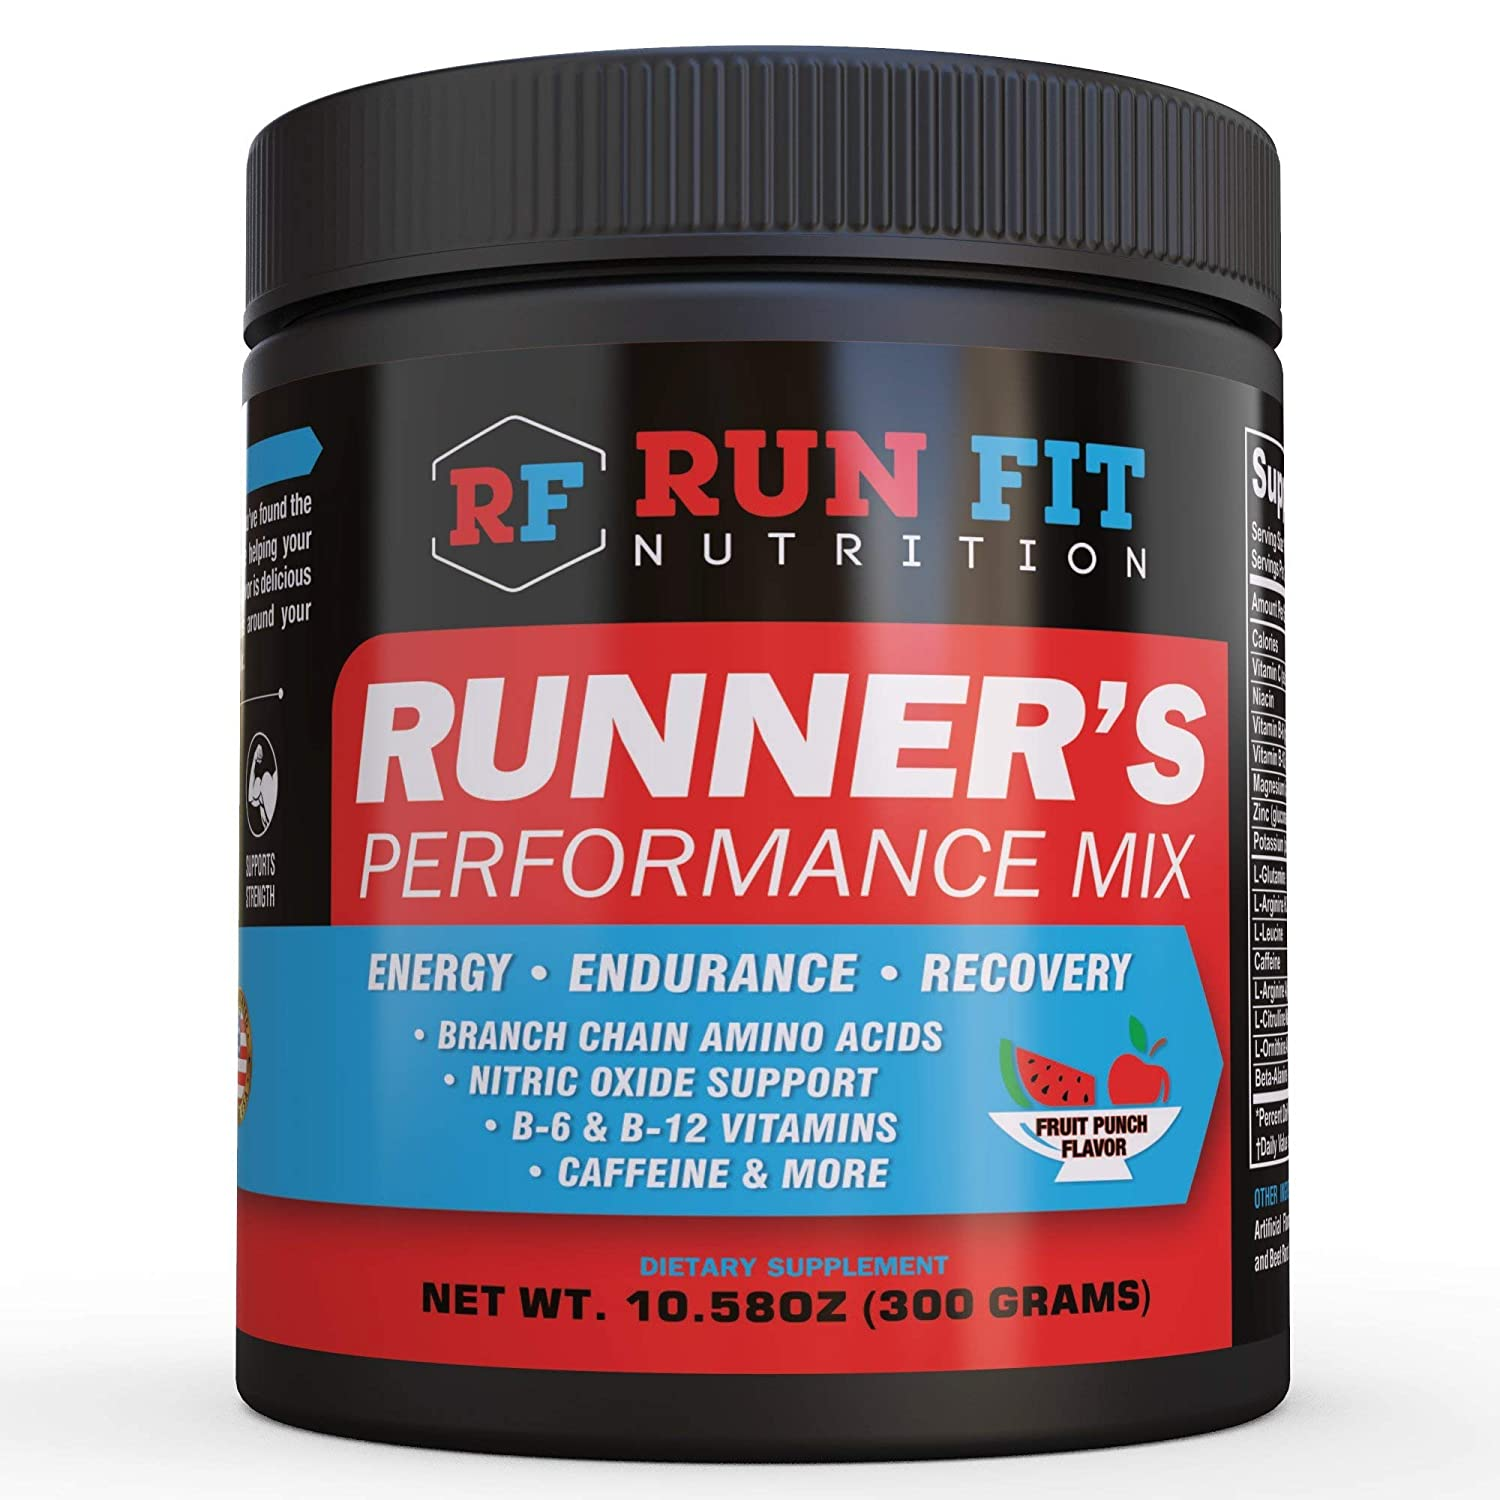 Runner s Performance Mix – Energy Endurance Drink Mix – Running Pre Workout or During Run – B Vitamins, BCAAs, Caffeine More Made in The USA